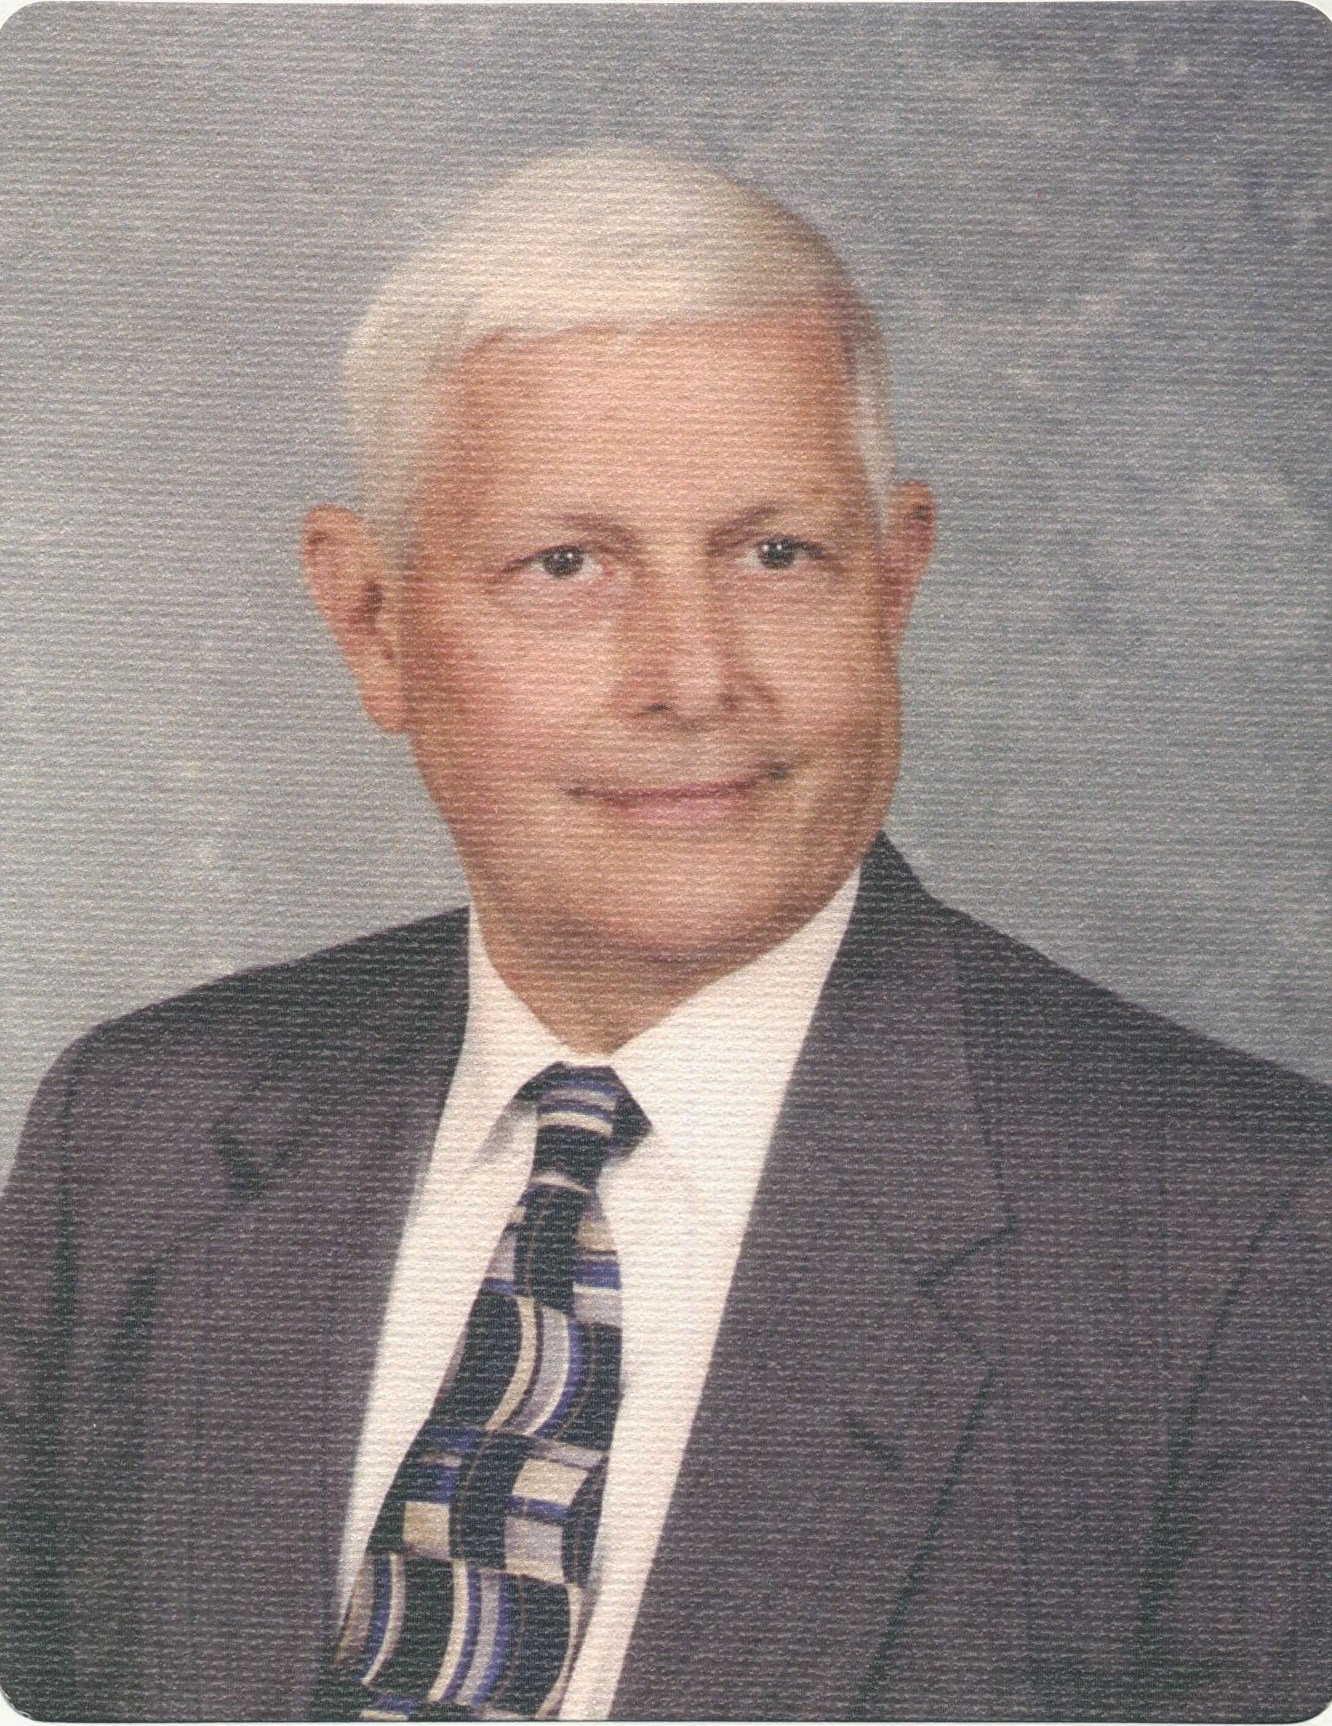 Owen Funeral Home Cartersville Obituaries : funeral, cartersville, obituaries, Obituary, Cartersville,